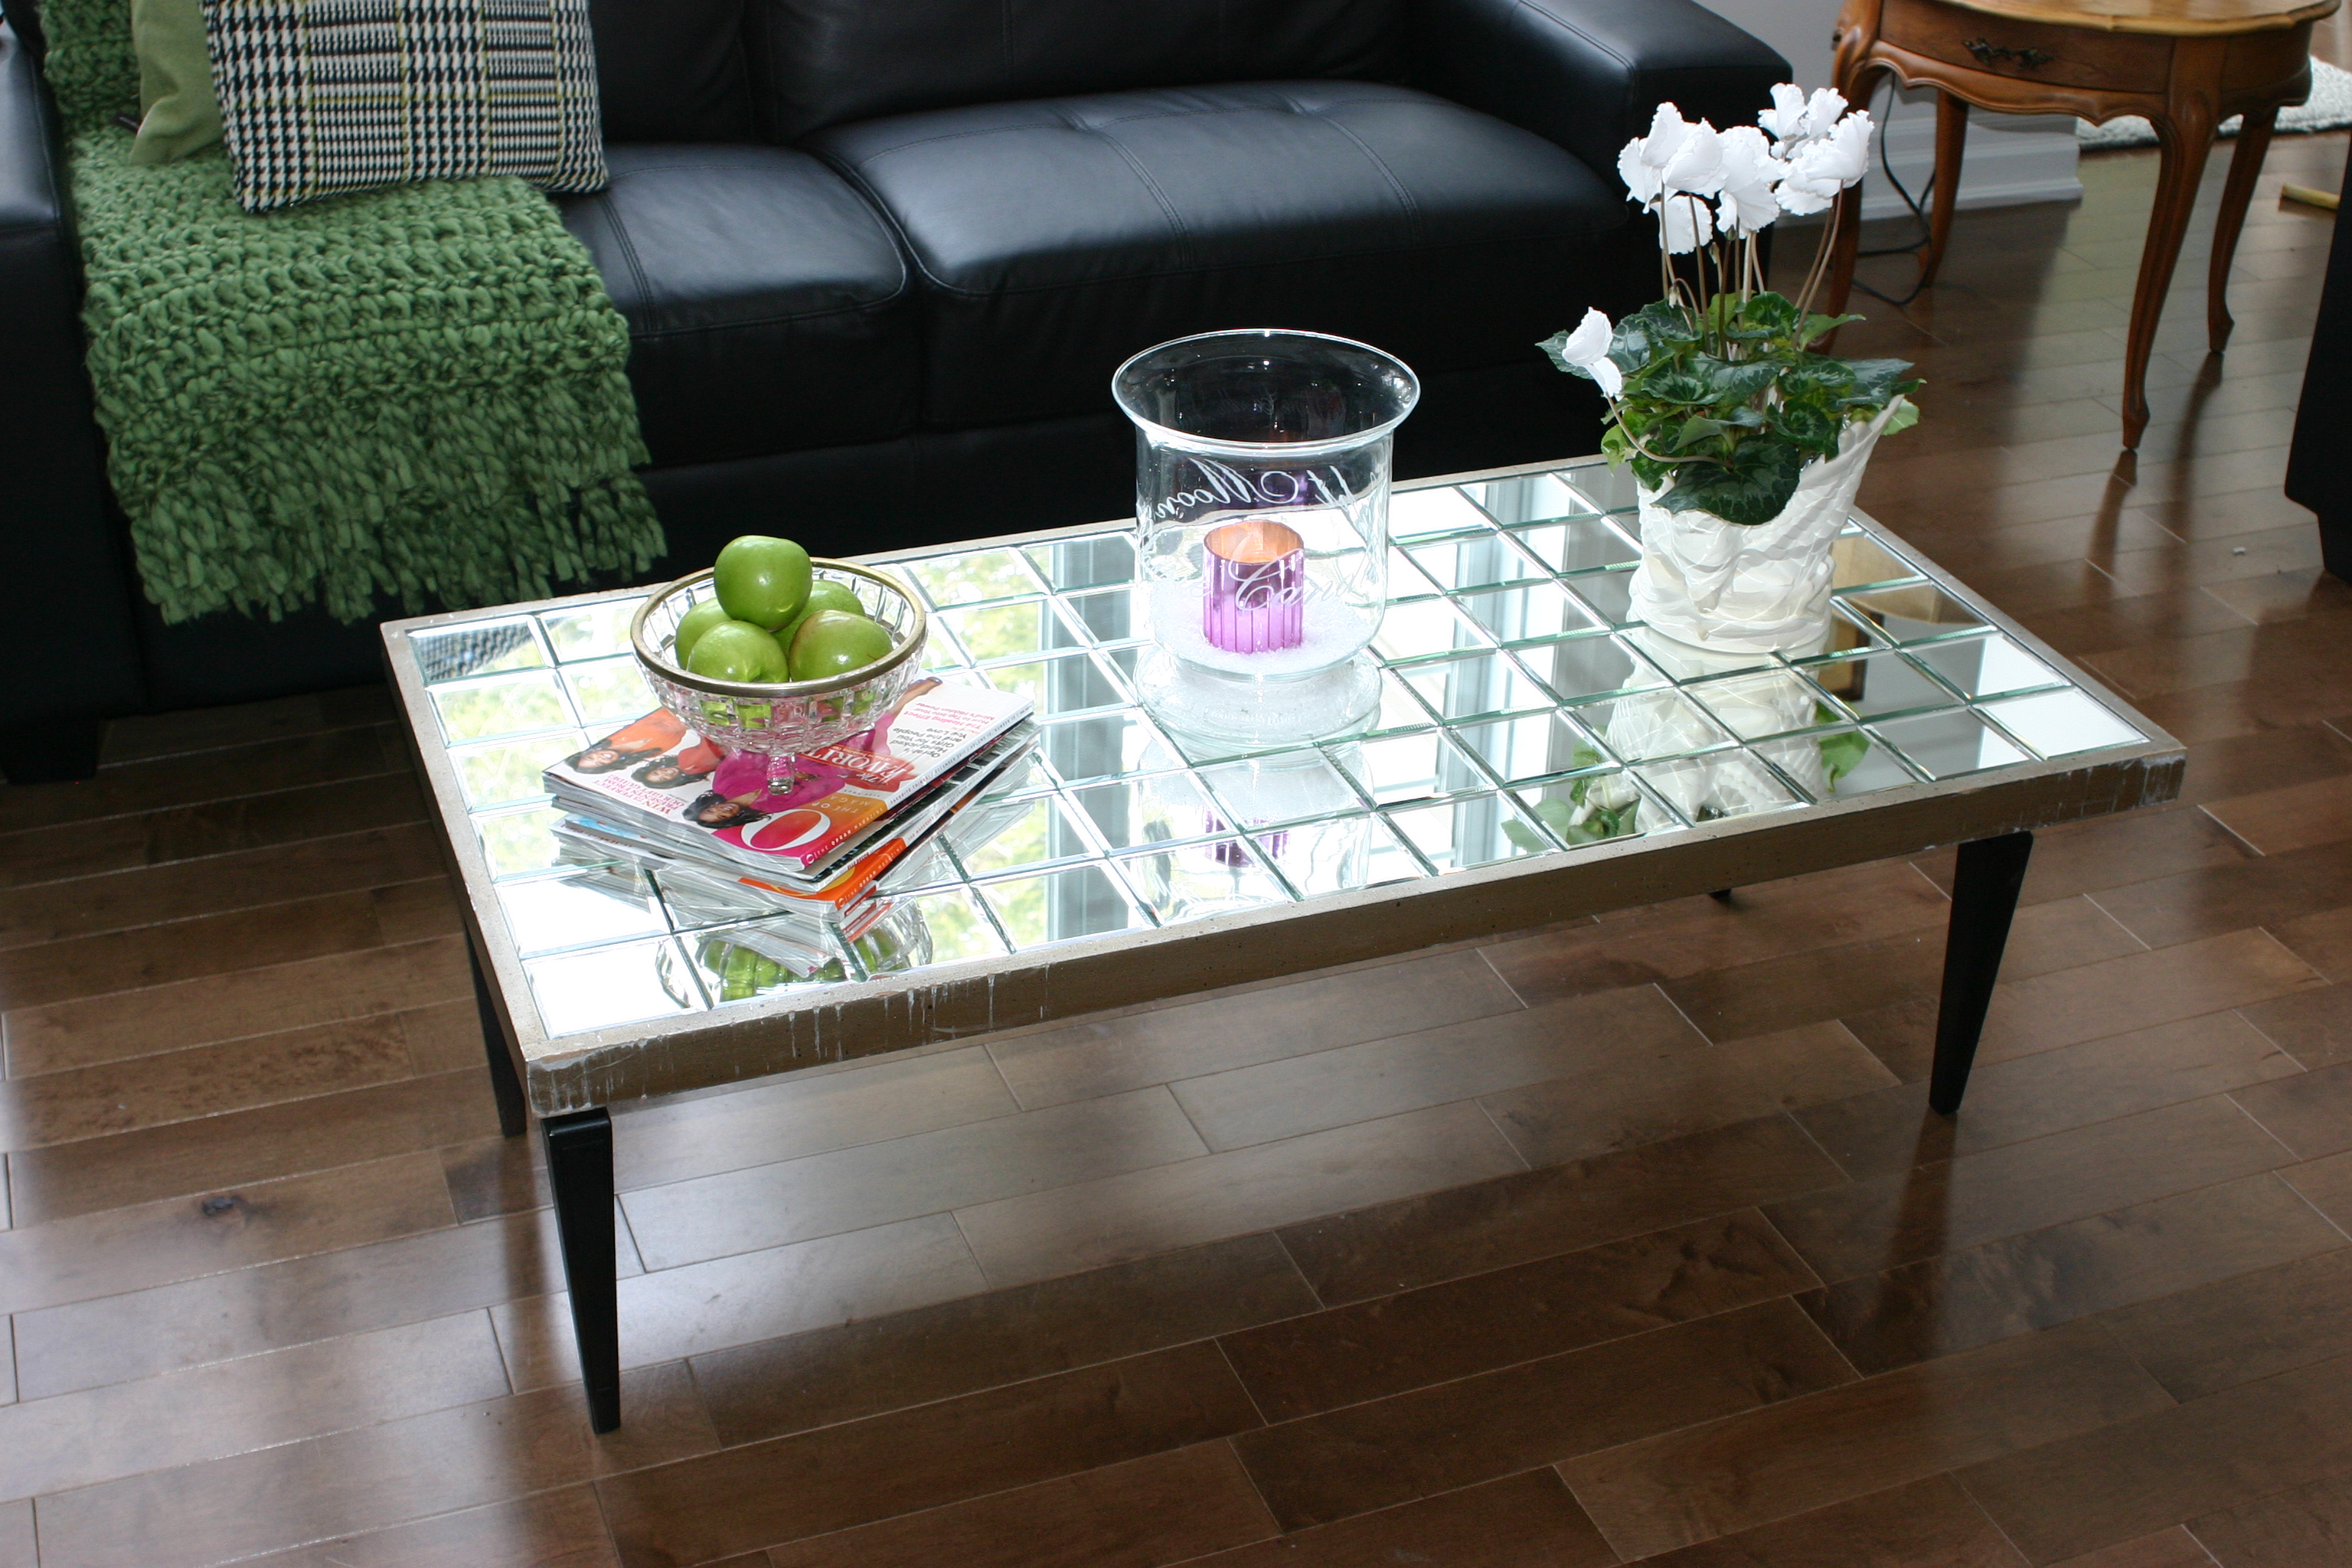 Tiled Mirrored Coffee Table